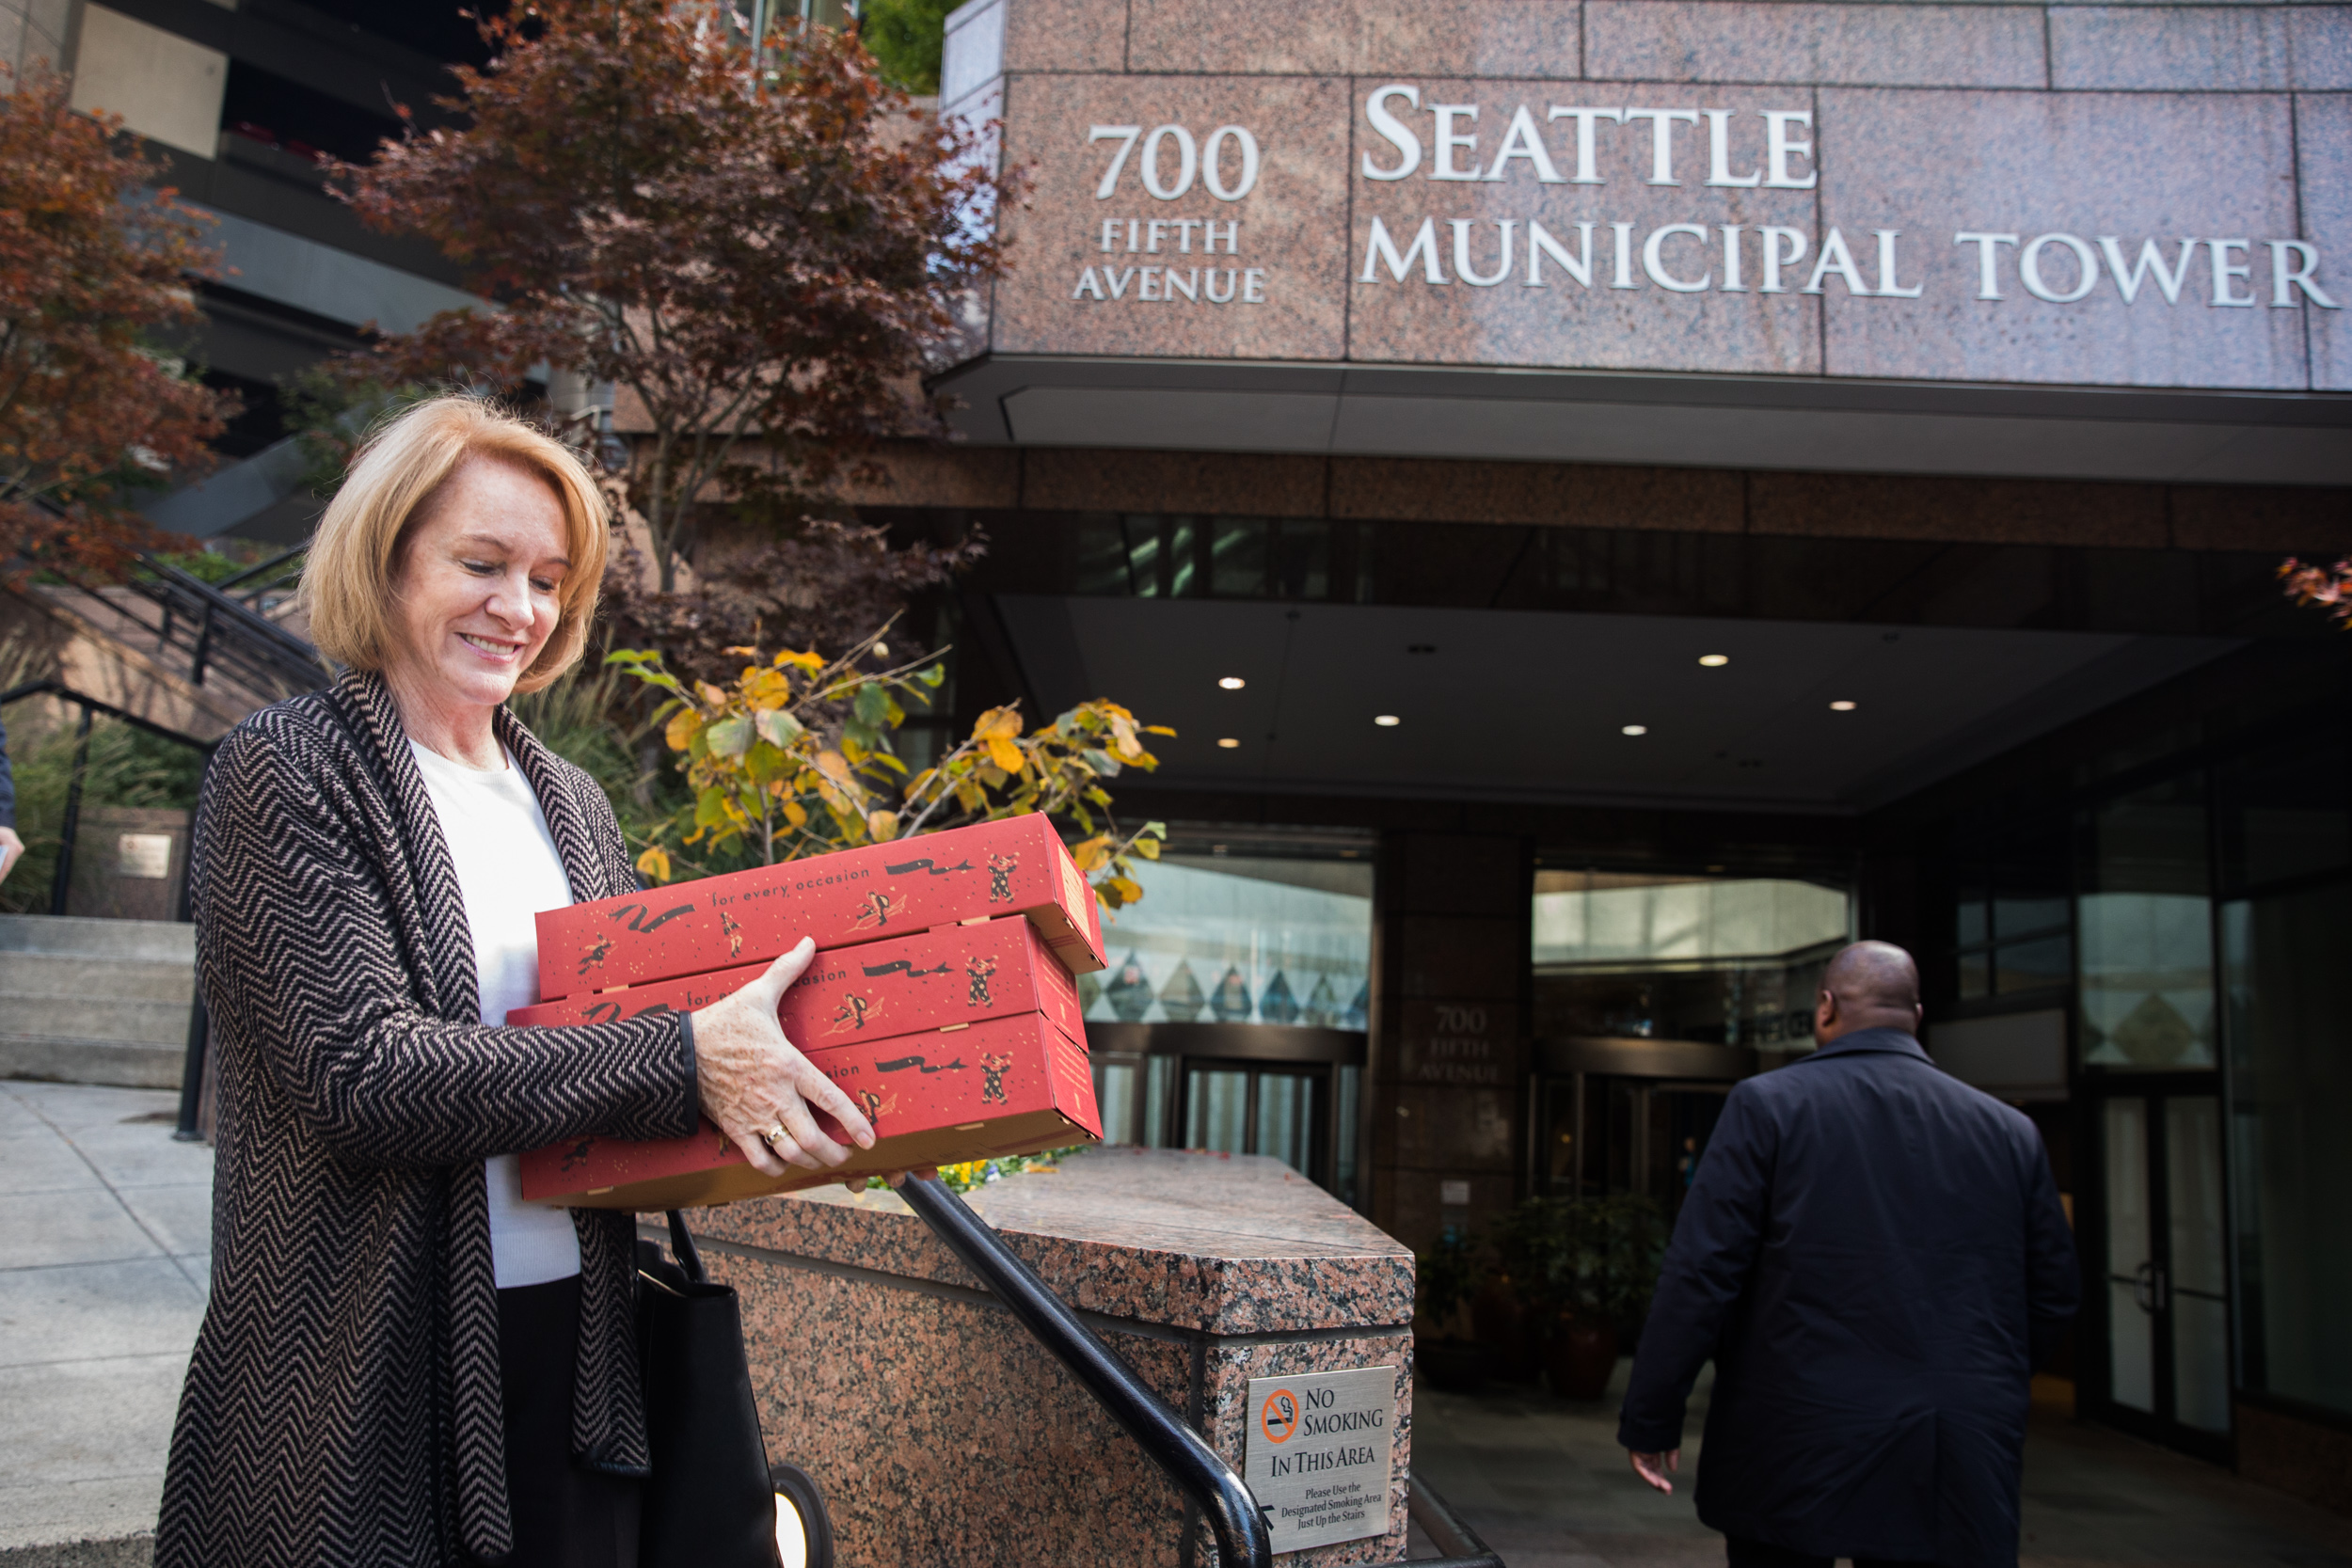 Outside the Seattle Municipal Tower, Mayor Jenny Durkan carries donuts for her staff, Nov. 8, 2018. (Photo by Matt M. McKnight/Crosscut)